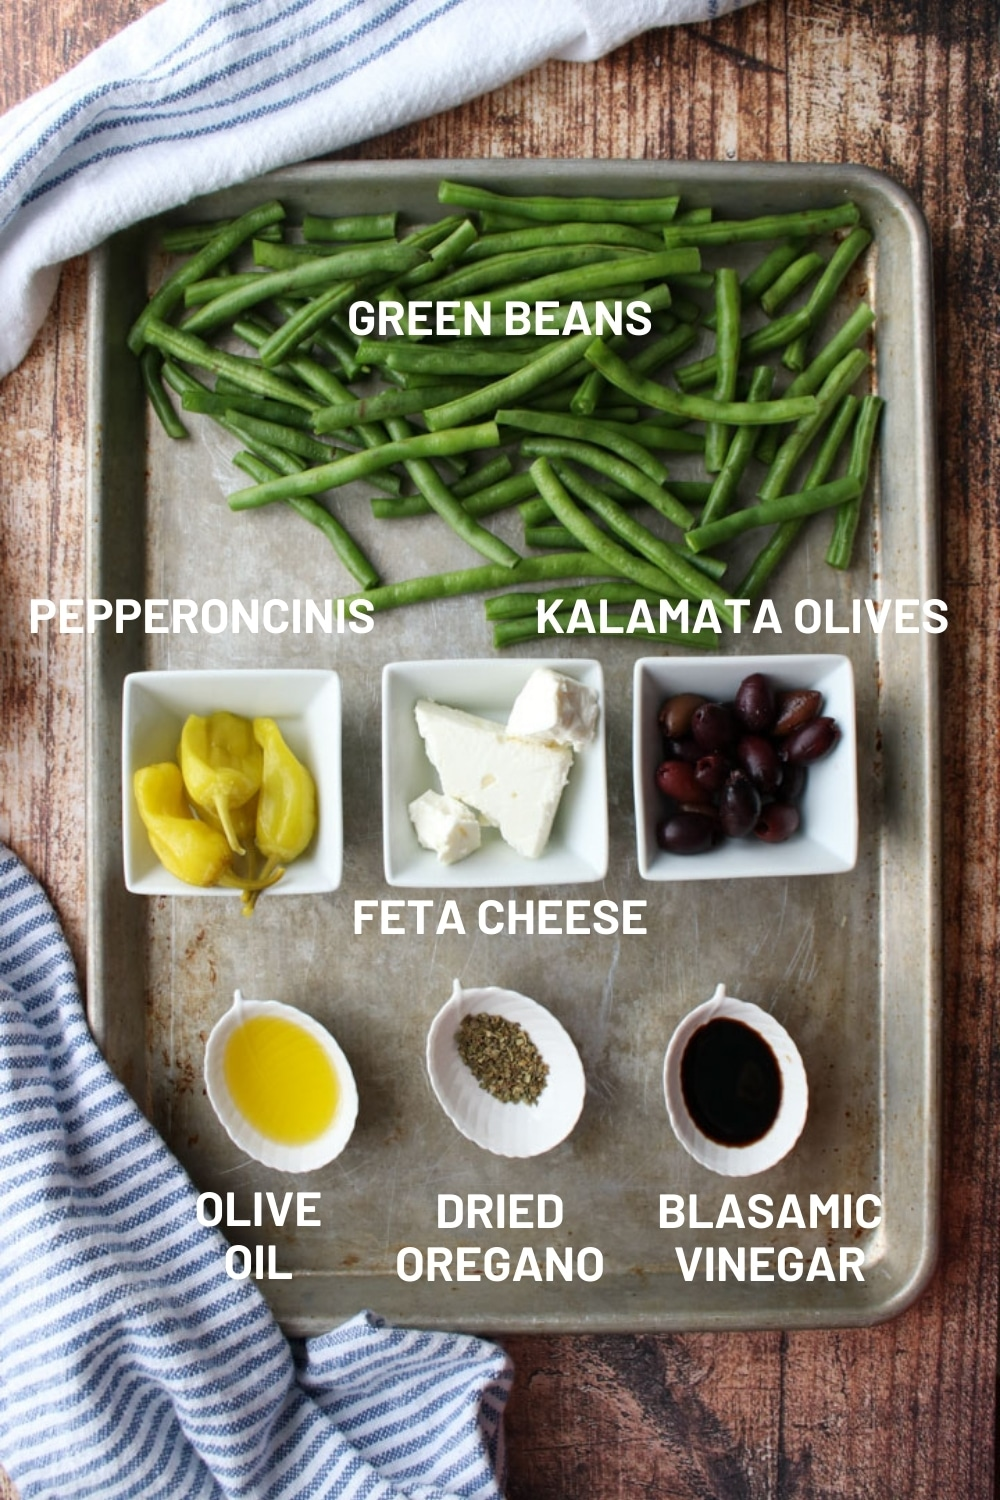 Tray with green bean ingredients